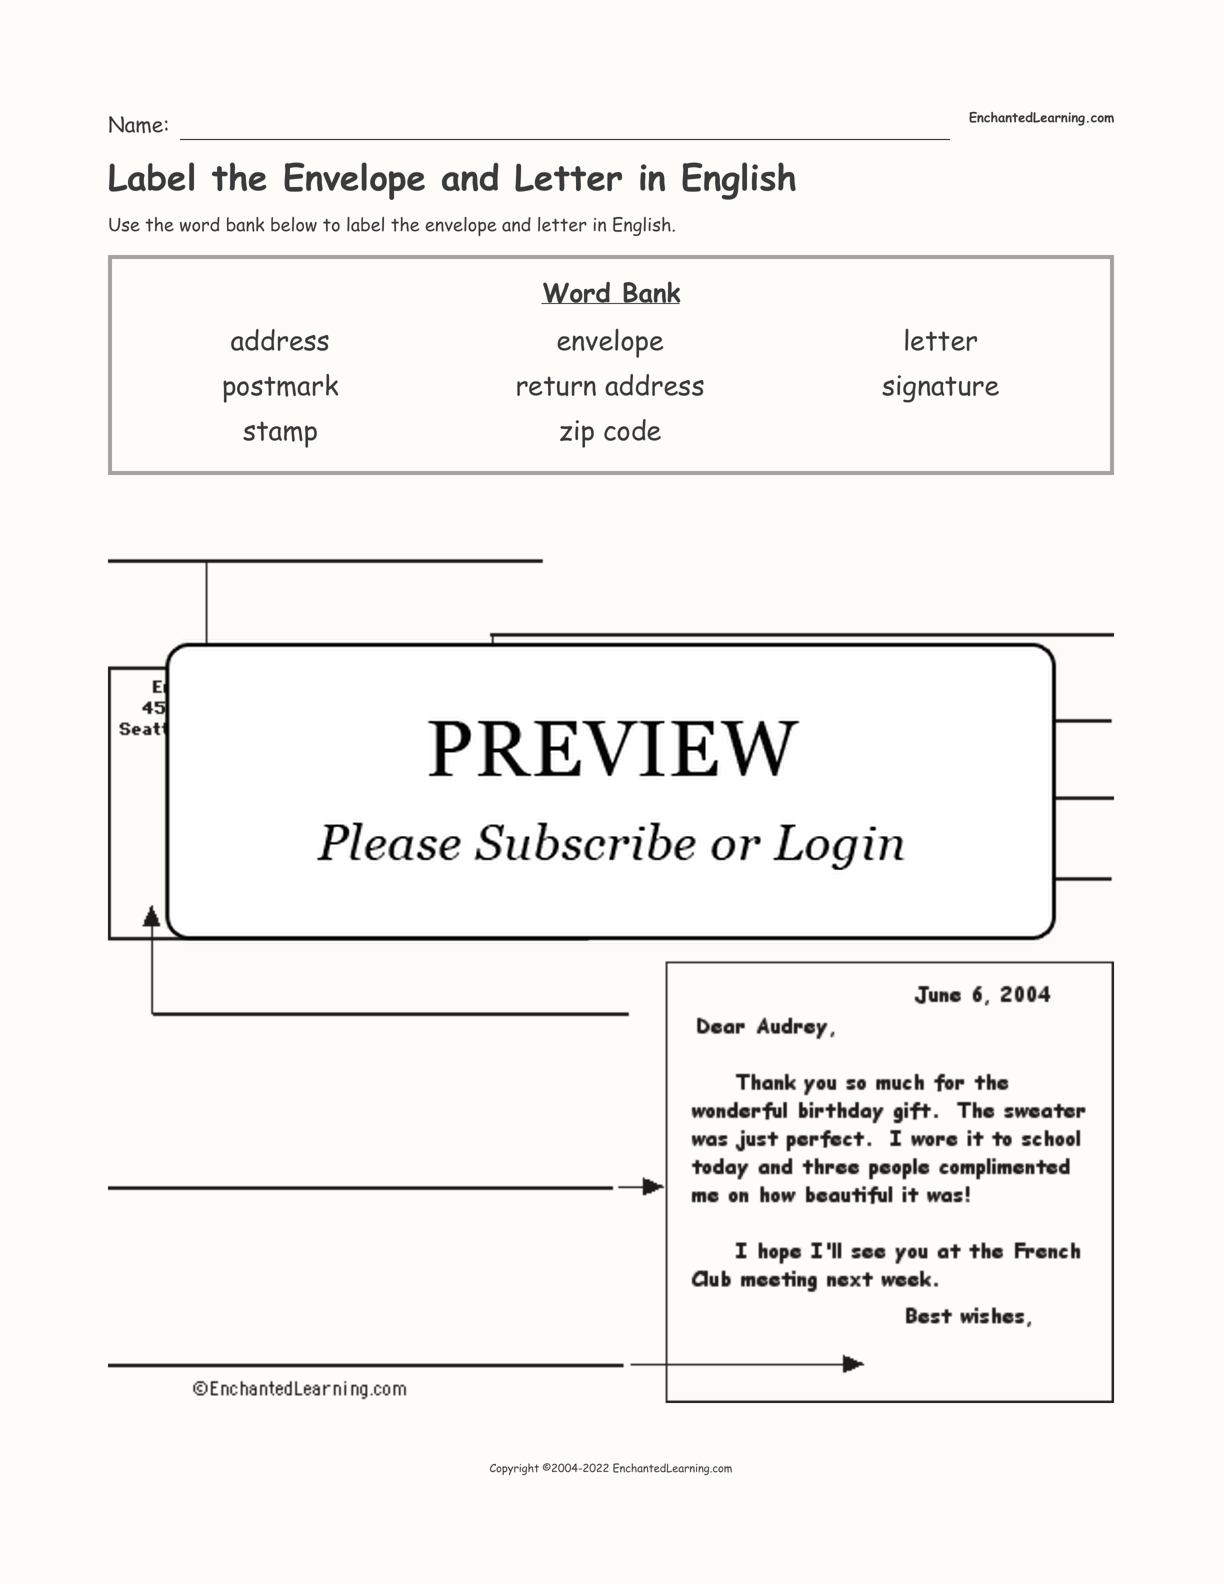 Label the Envelope and Letter in English interactive worksheet page 1